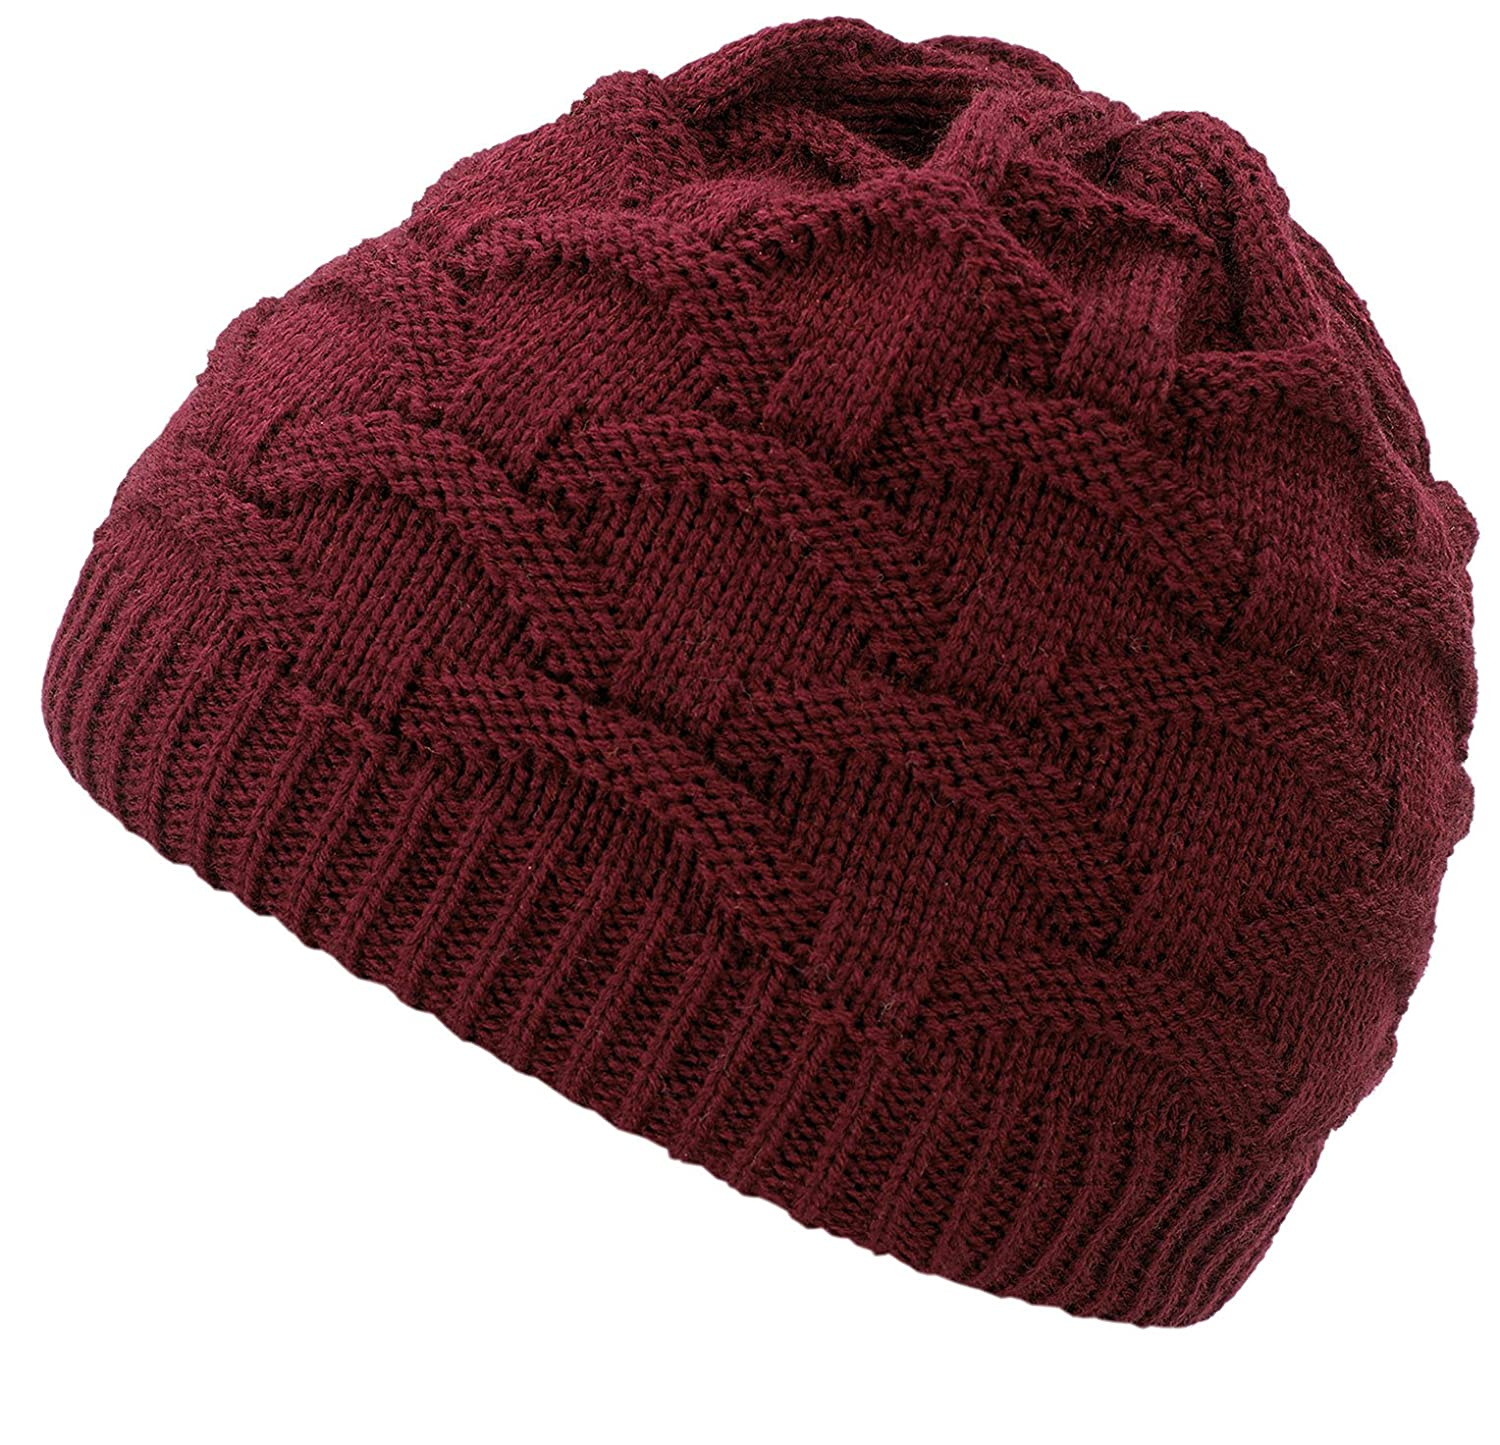 4sold Wave Womens Girls Winter Hat Wool Knitted Beanie Fleece Cap Ski Snowboard Hats Bobble beanie Fala